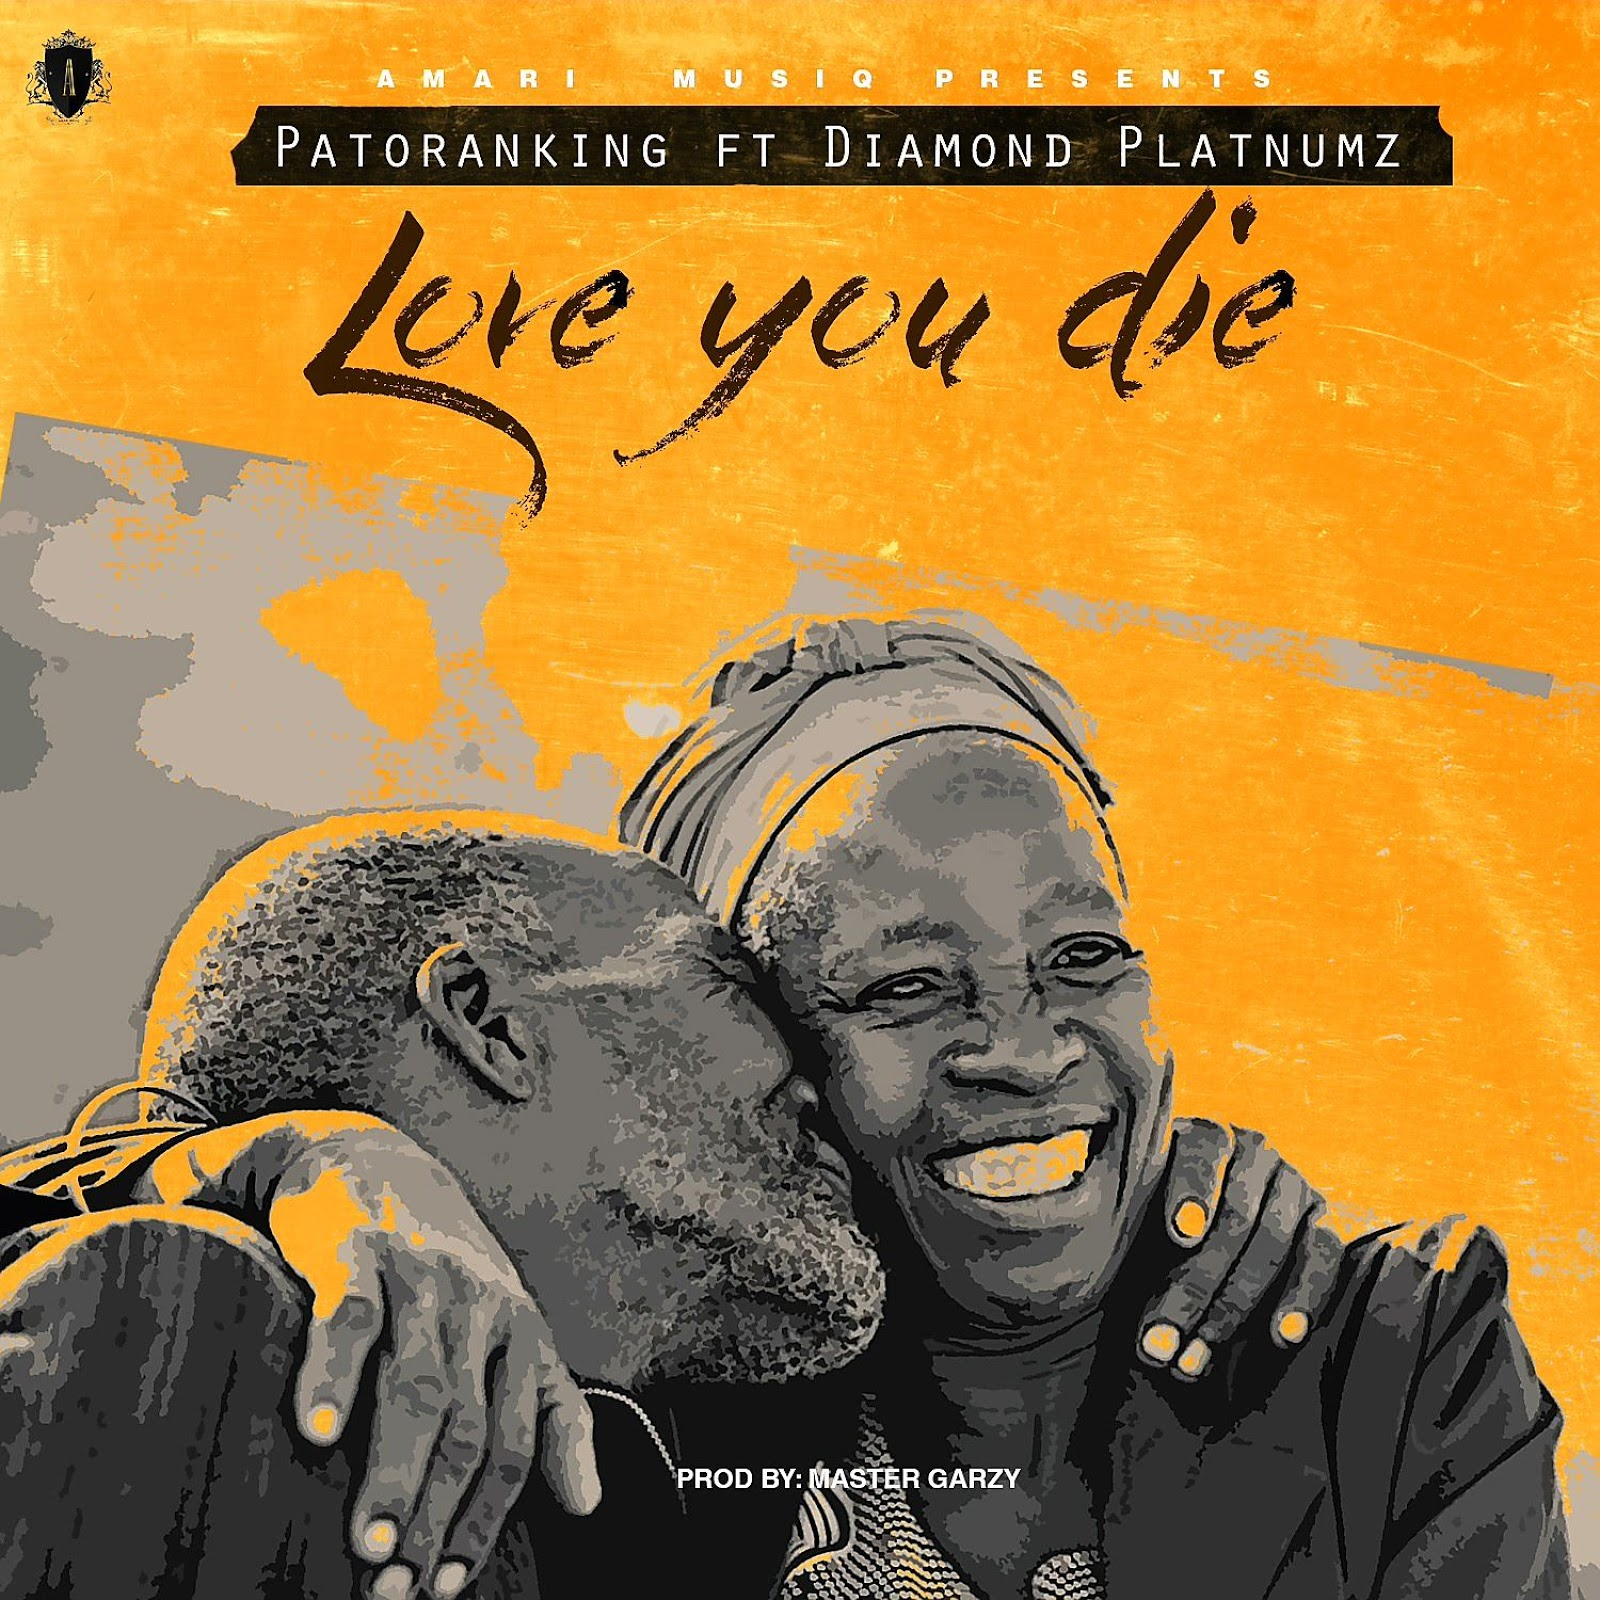 Patoranking Ft Diamond Platnumz – Love You Die |Download Mp3